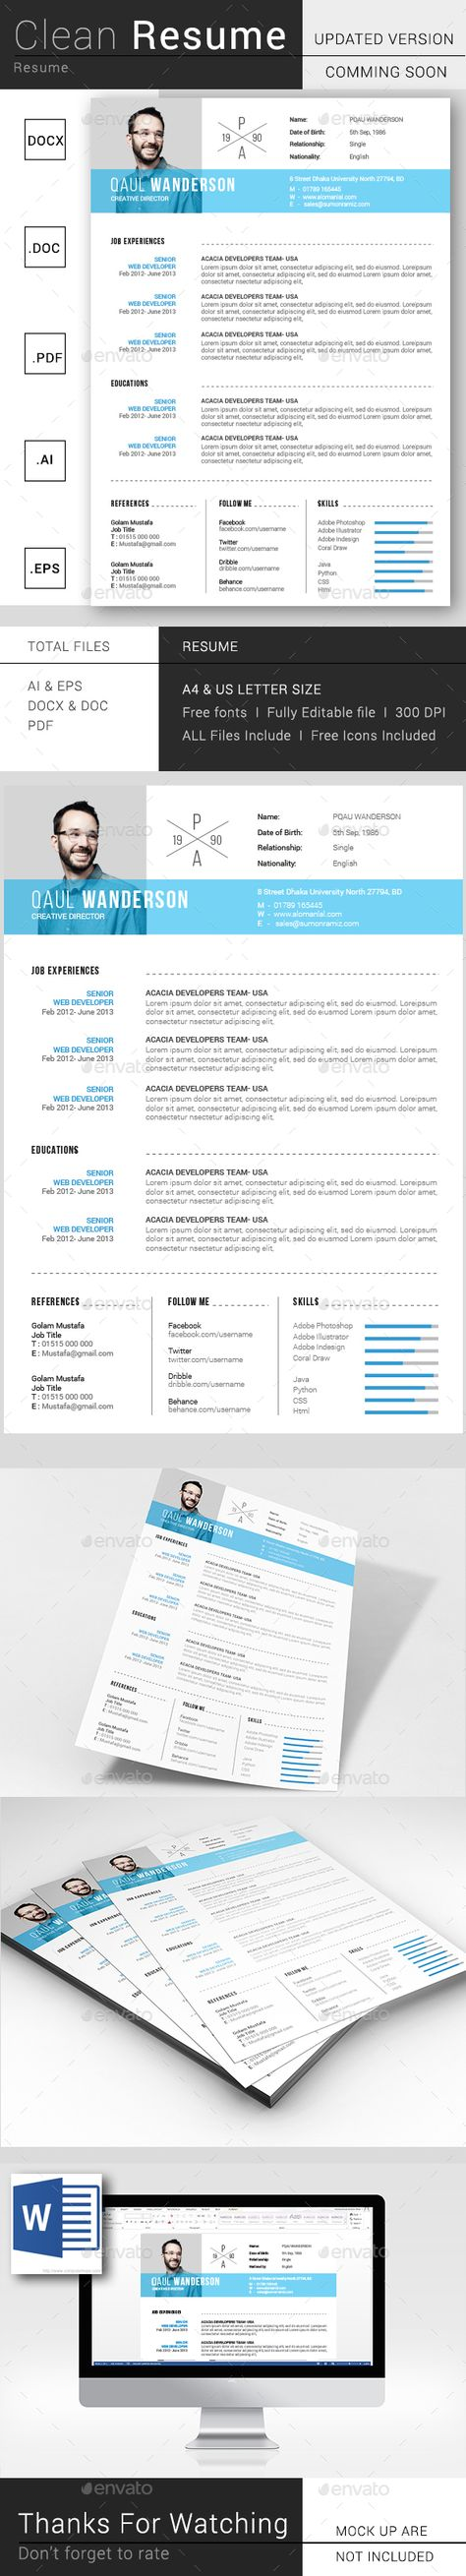 Free Simple Professional Resume Template in Ai